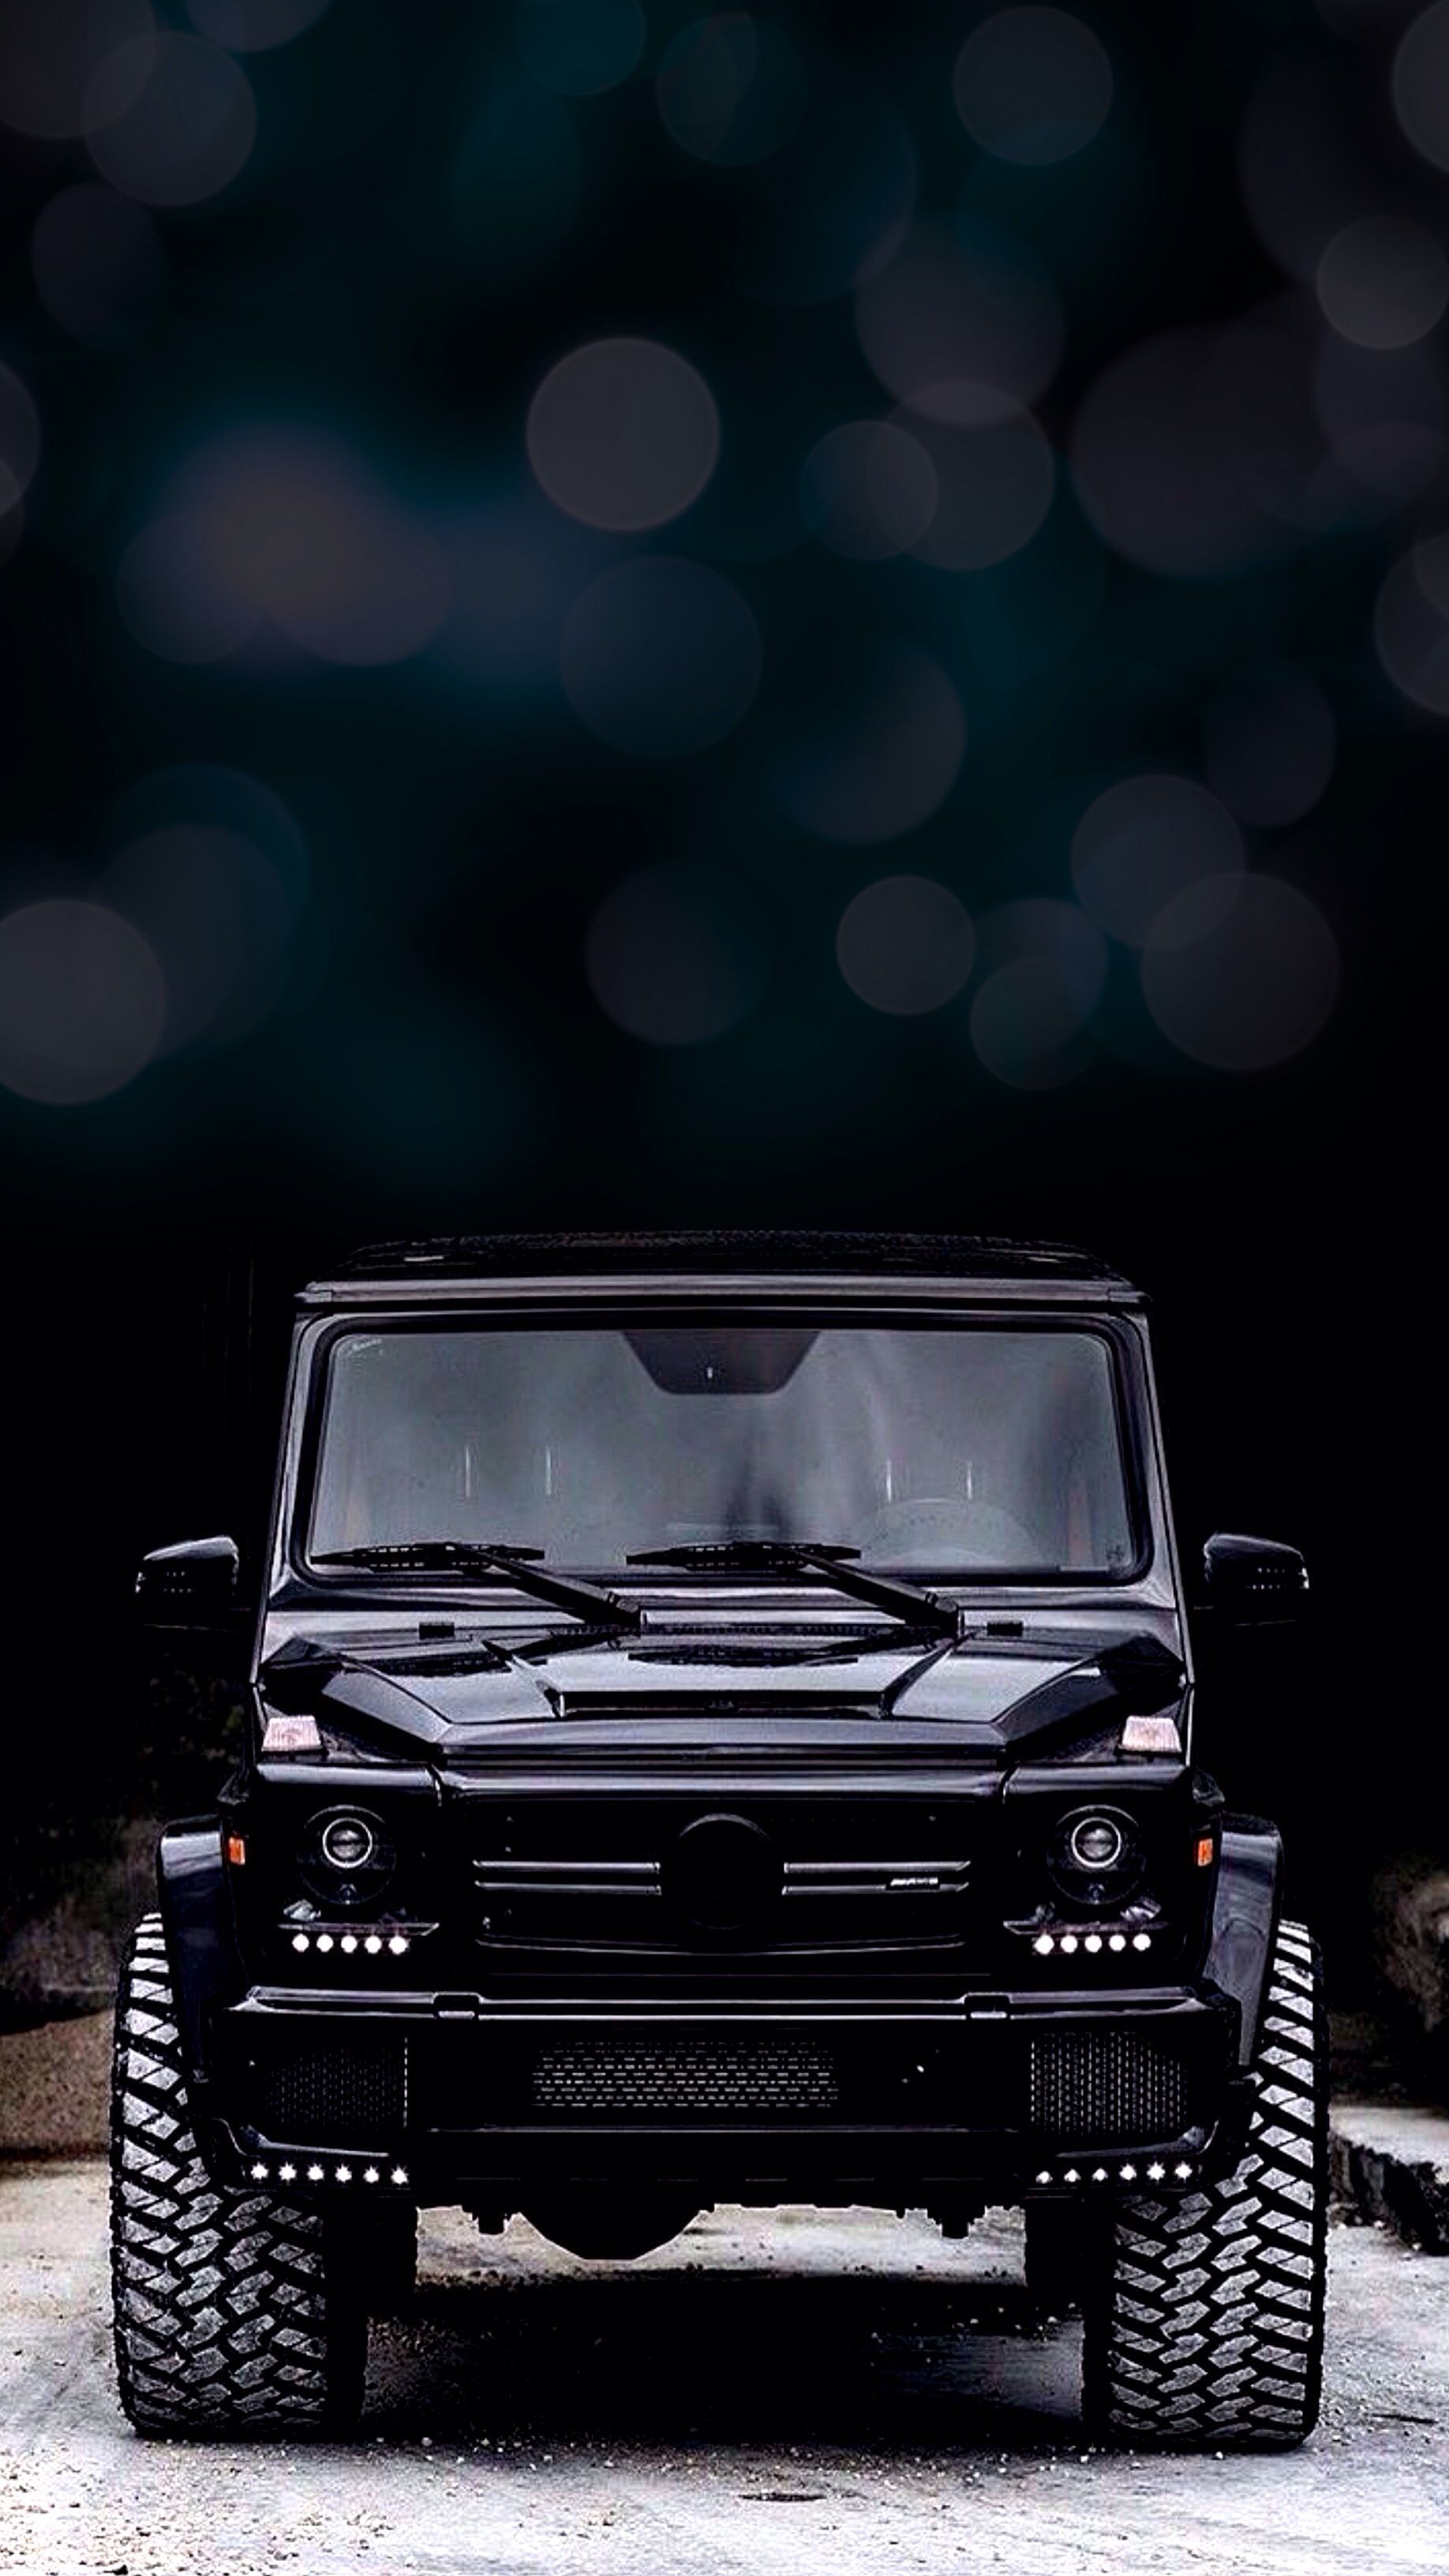 Pin By Wallpapers Phone Pad Hd On 9 16 Phone Car Wallpapers Bmw Iphone Wallpaper Unique Cars